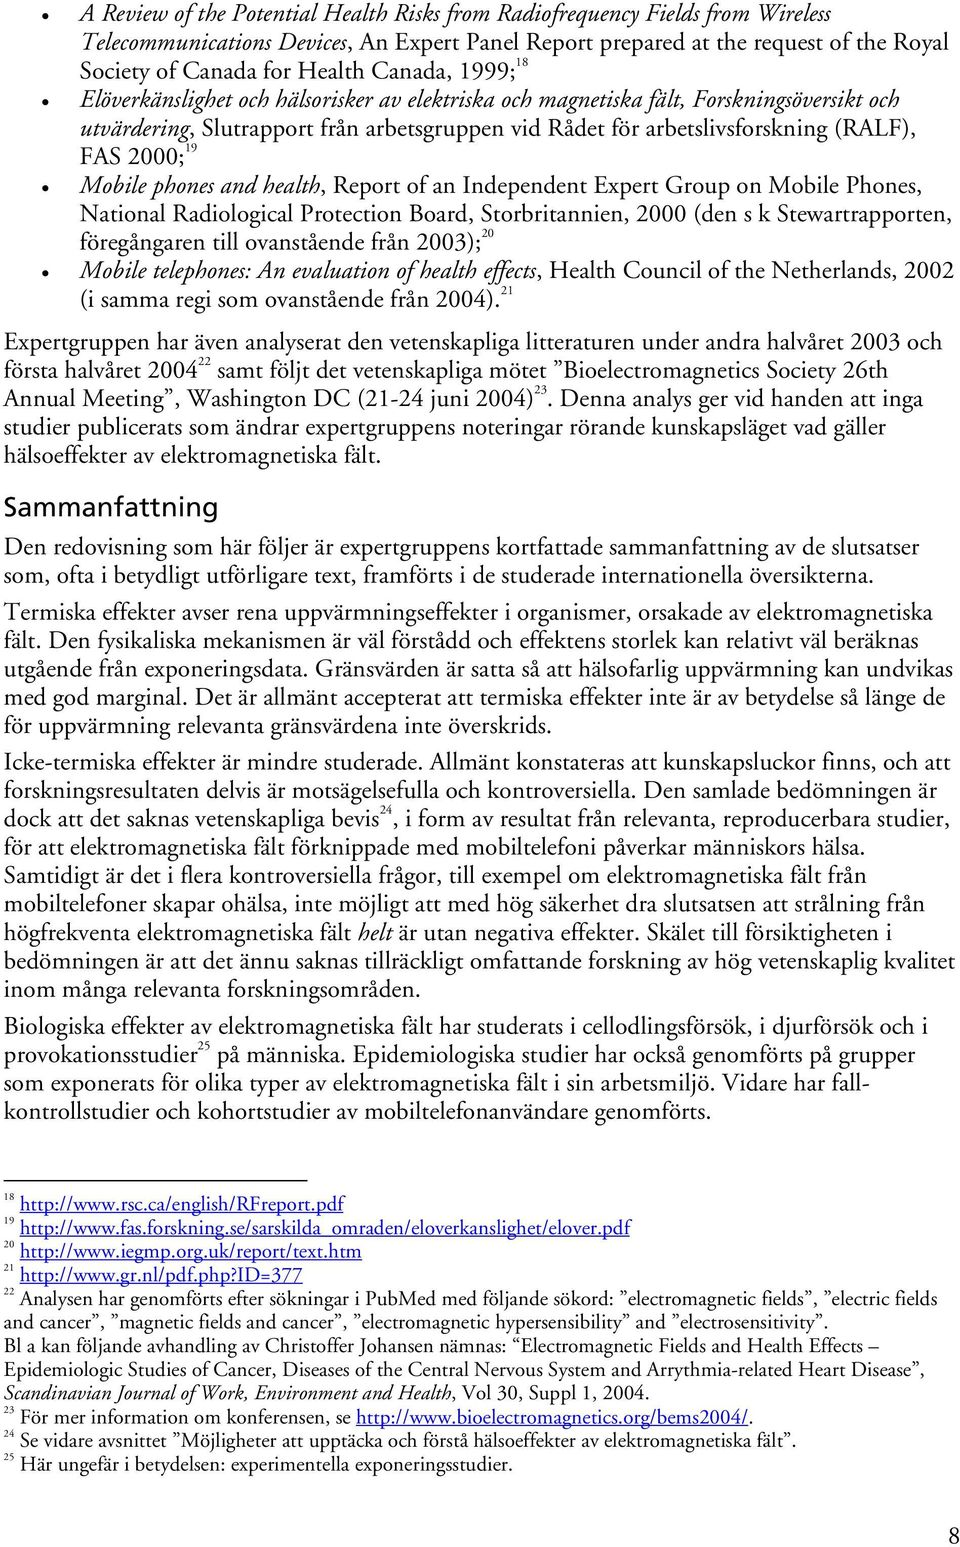 2000; 19 Mobile phones and health, Report of an Independent Expert Group on Mobile Phones, National Radiological Protection Board, Storbritannien, 2000 (den s k Stewartrapporten, föregångaren till